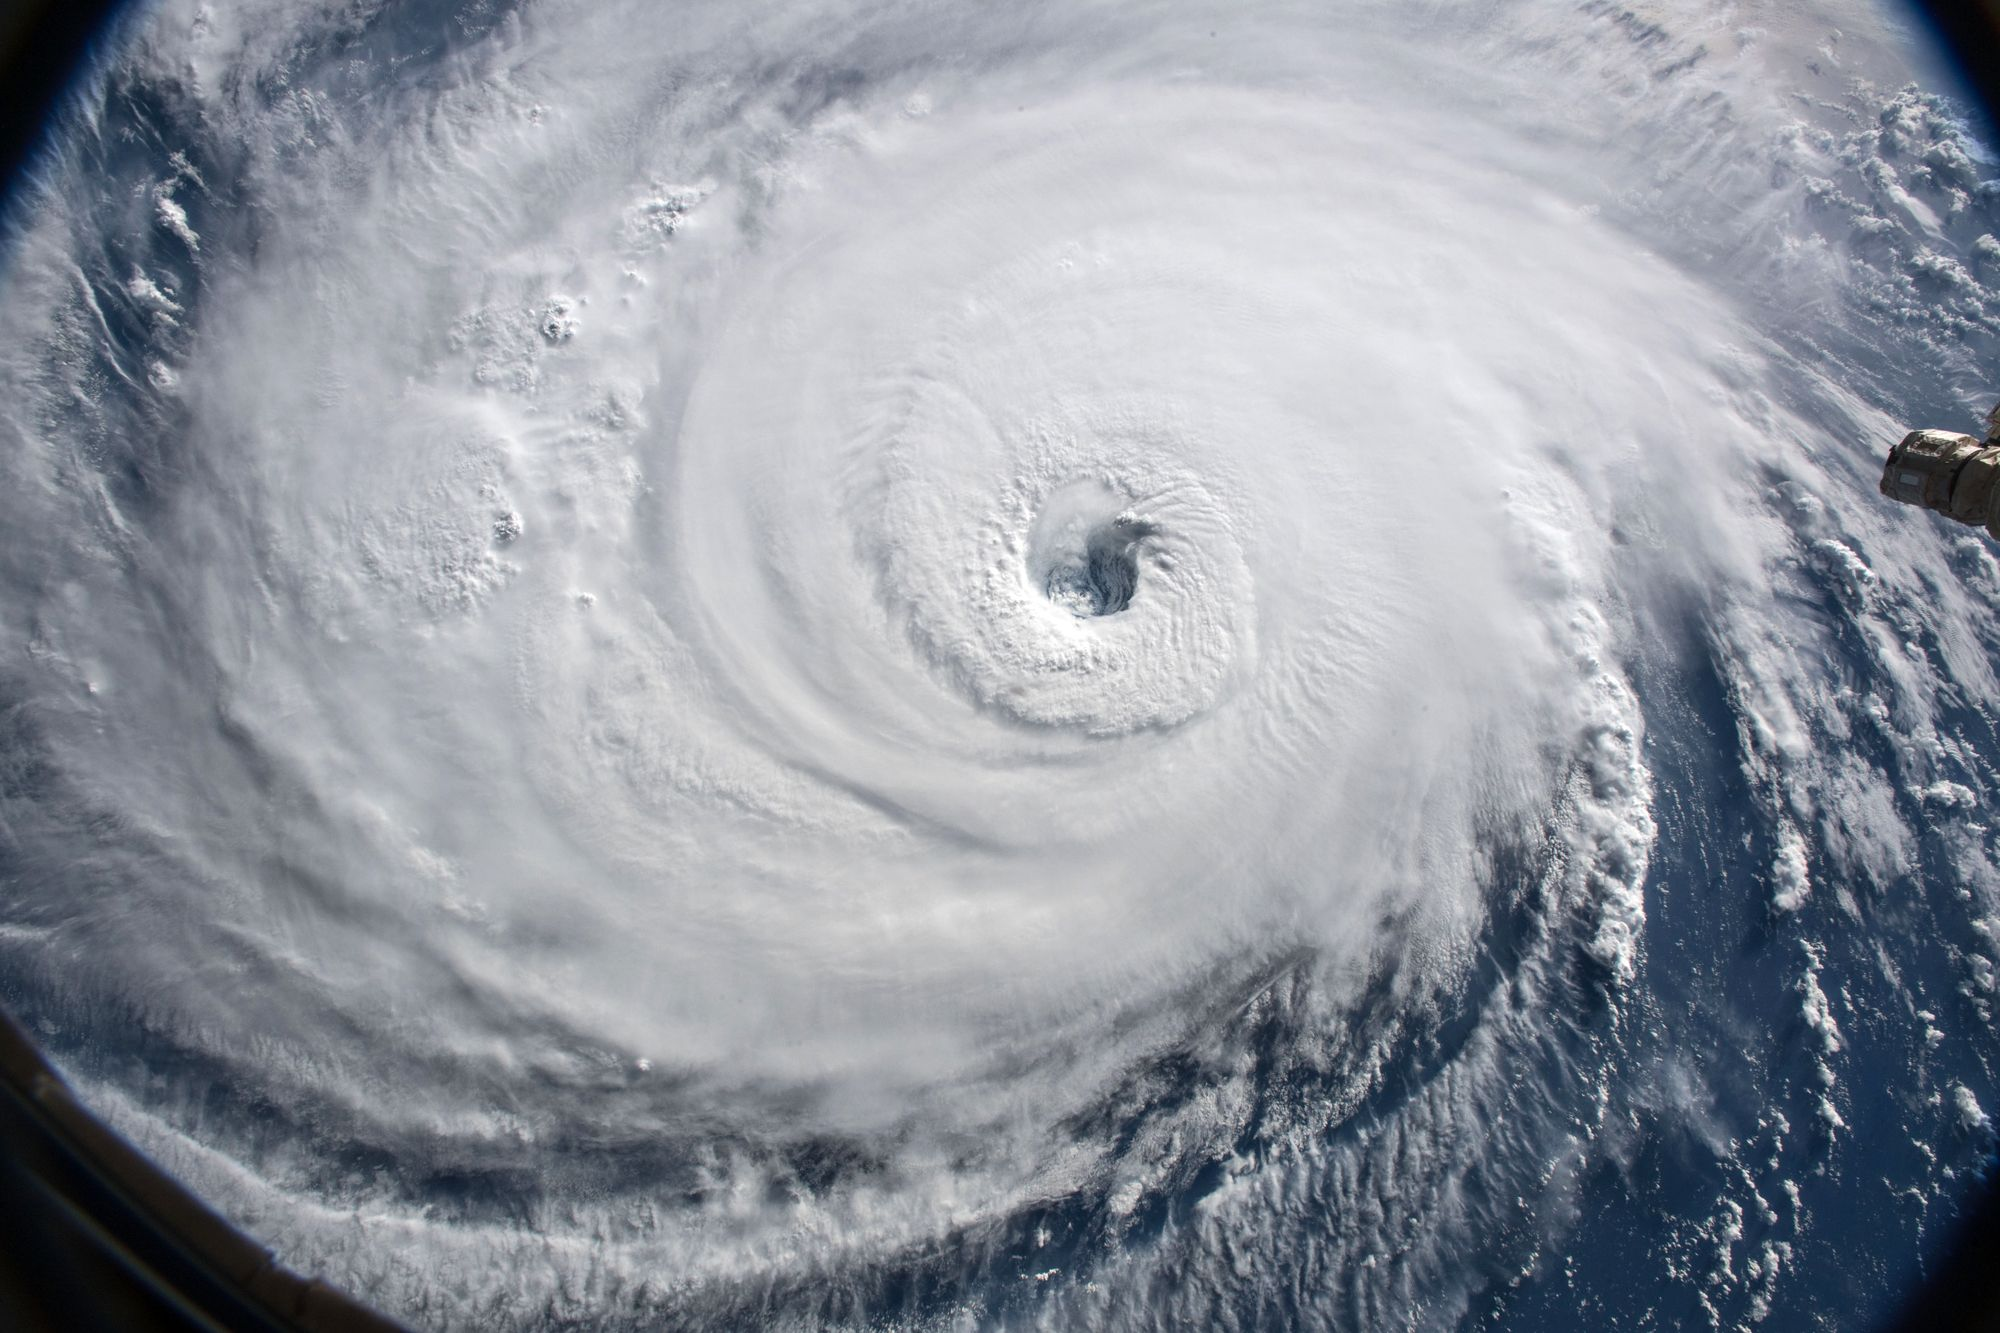 Hurricane Florence Makes Landfall As Category 1 Storm As Rescue Teams Work To Save The Trapped Climate Change Storm Surge Global Warming